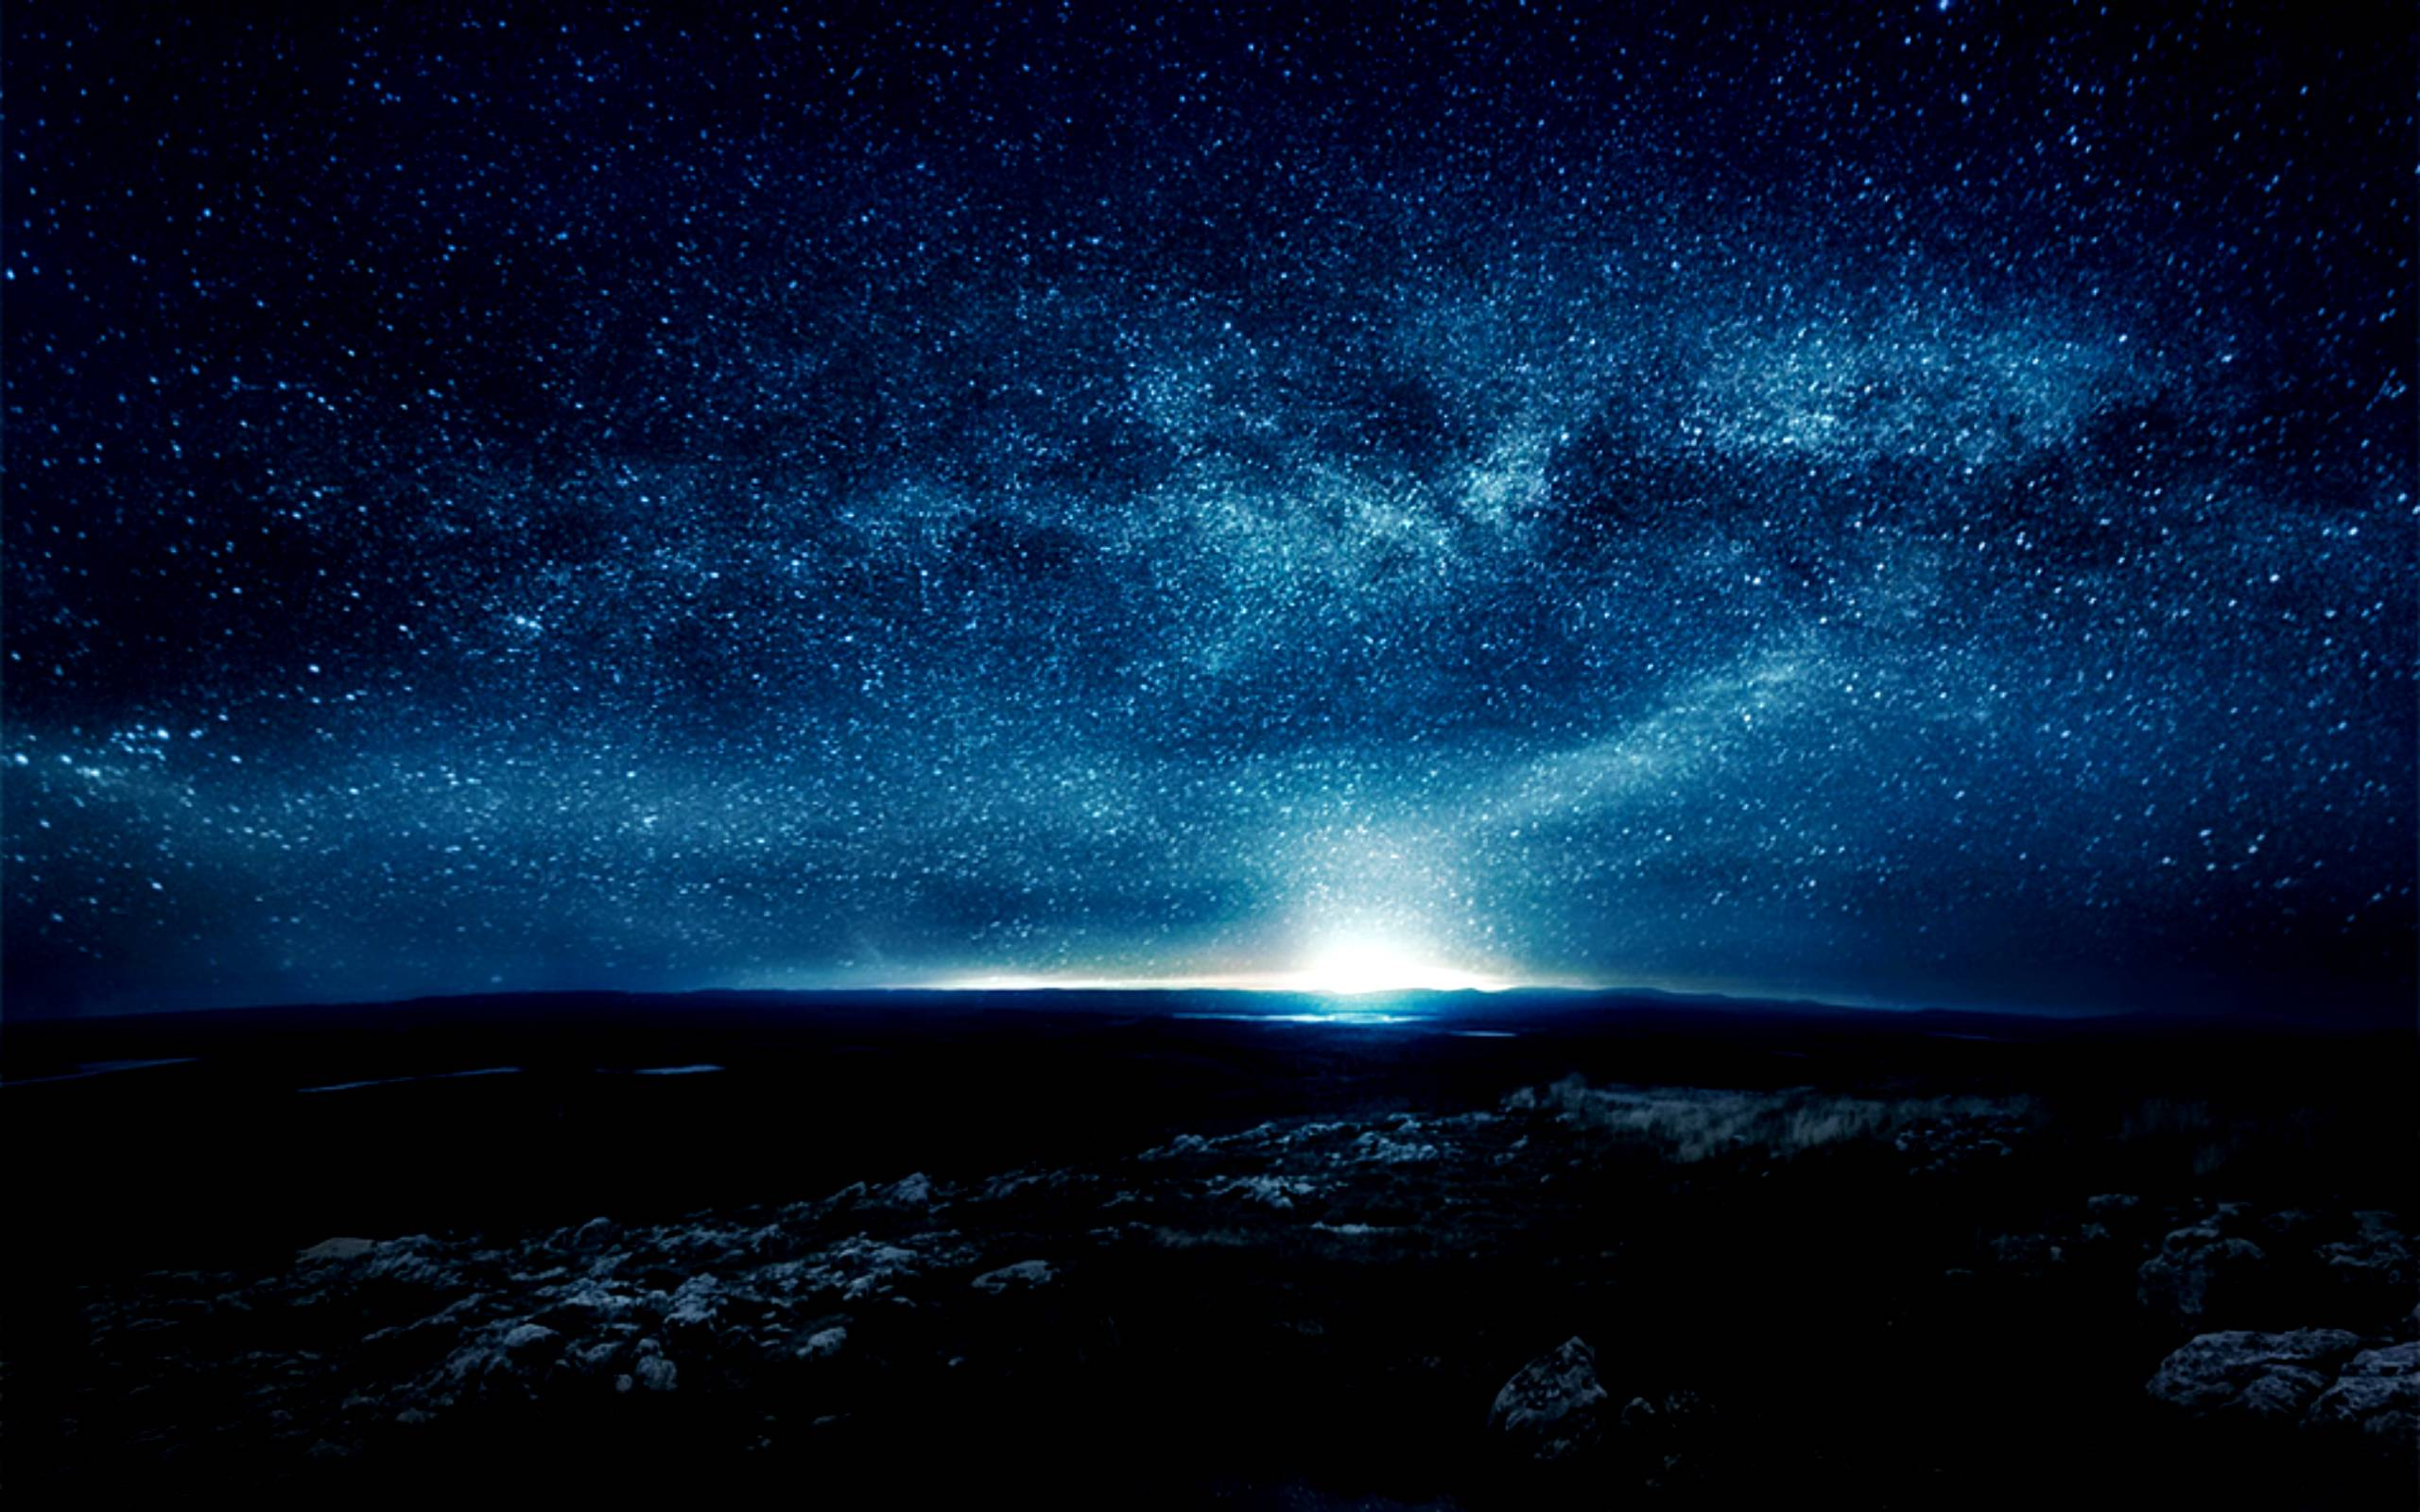 wallpaper starry night for - photo #6